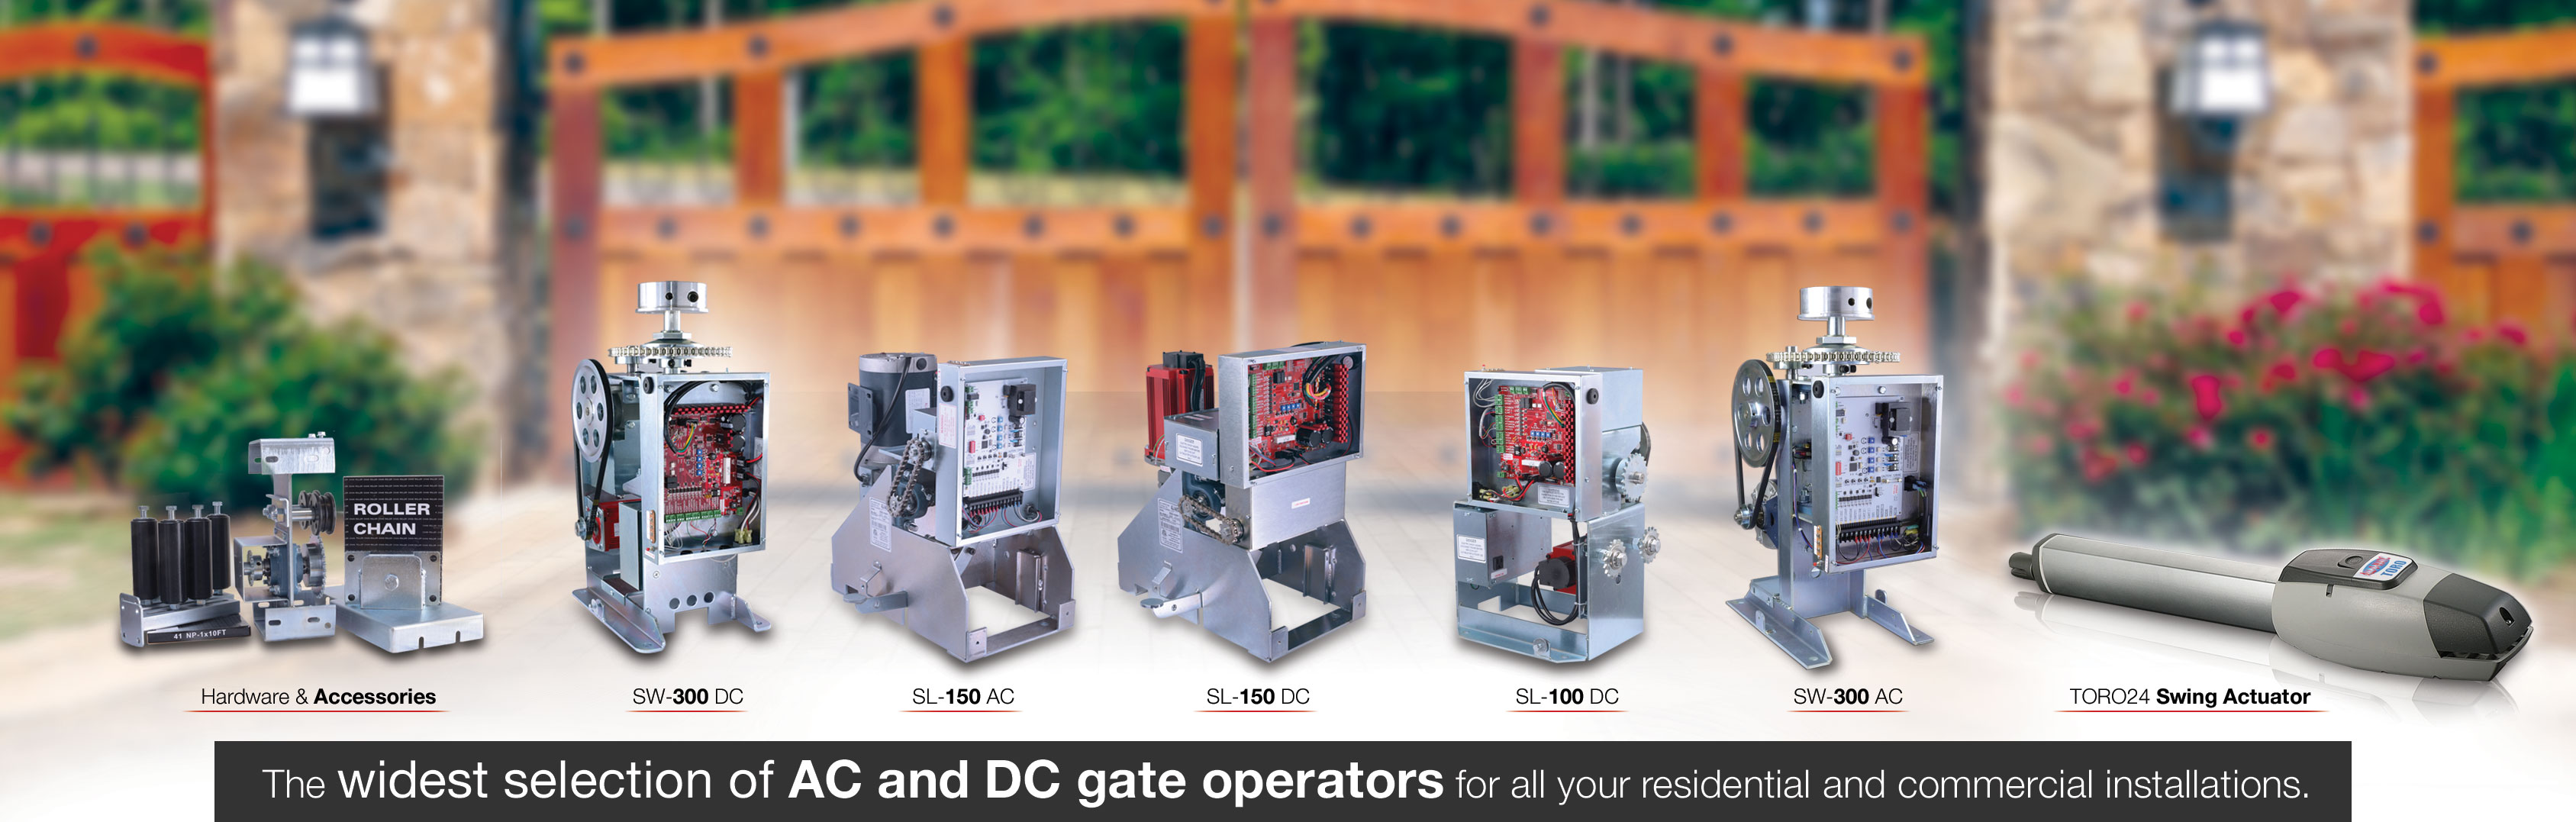 All-O-Matic - The Leader in Gate Operators Video